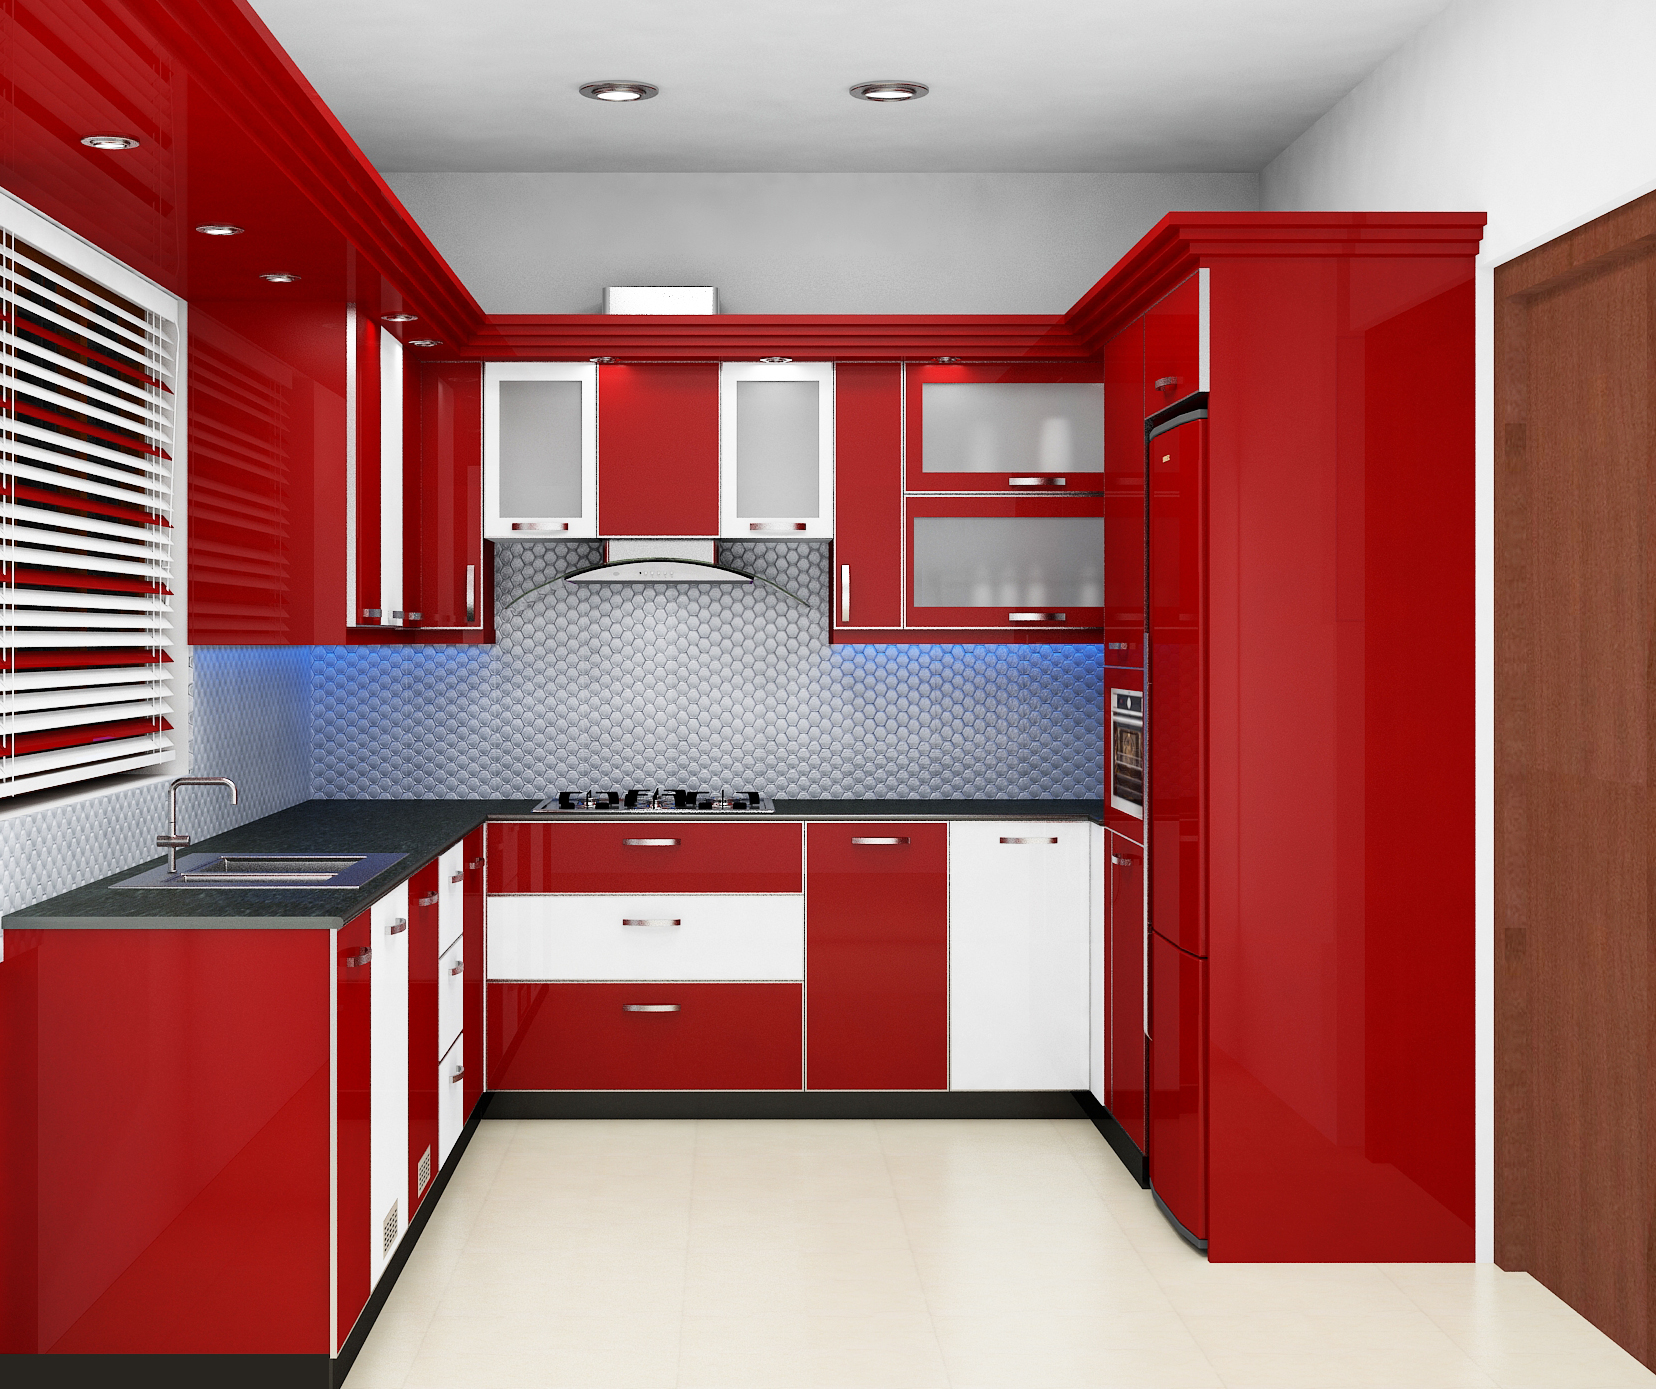 Exemplary and amazing modular kitchen home interior design for Home design interior design